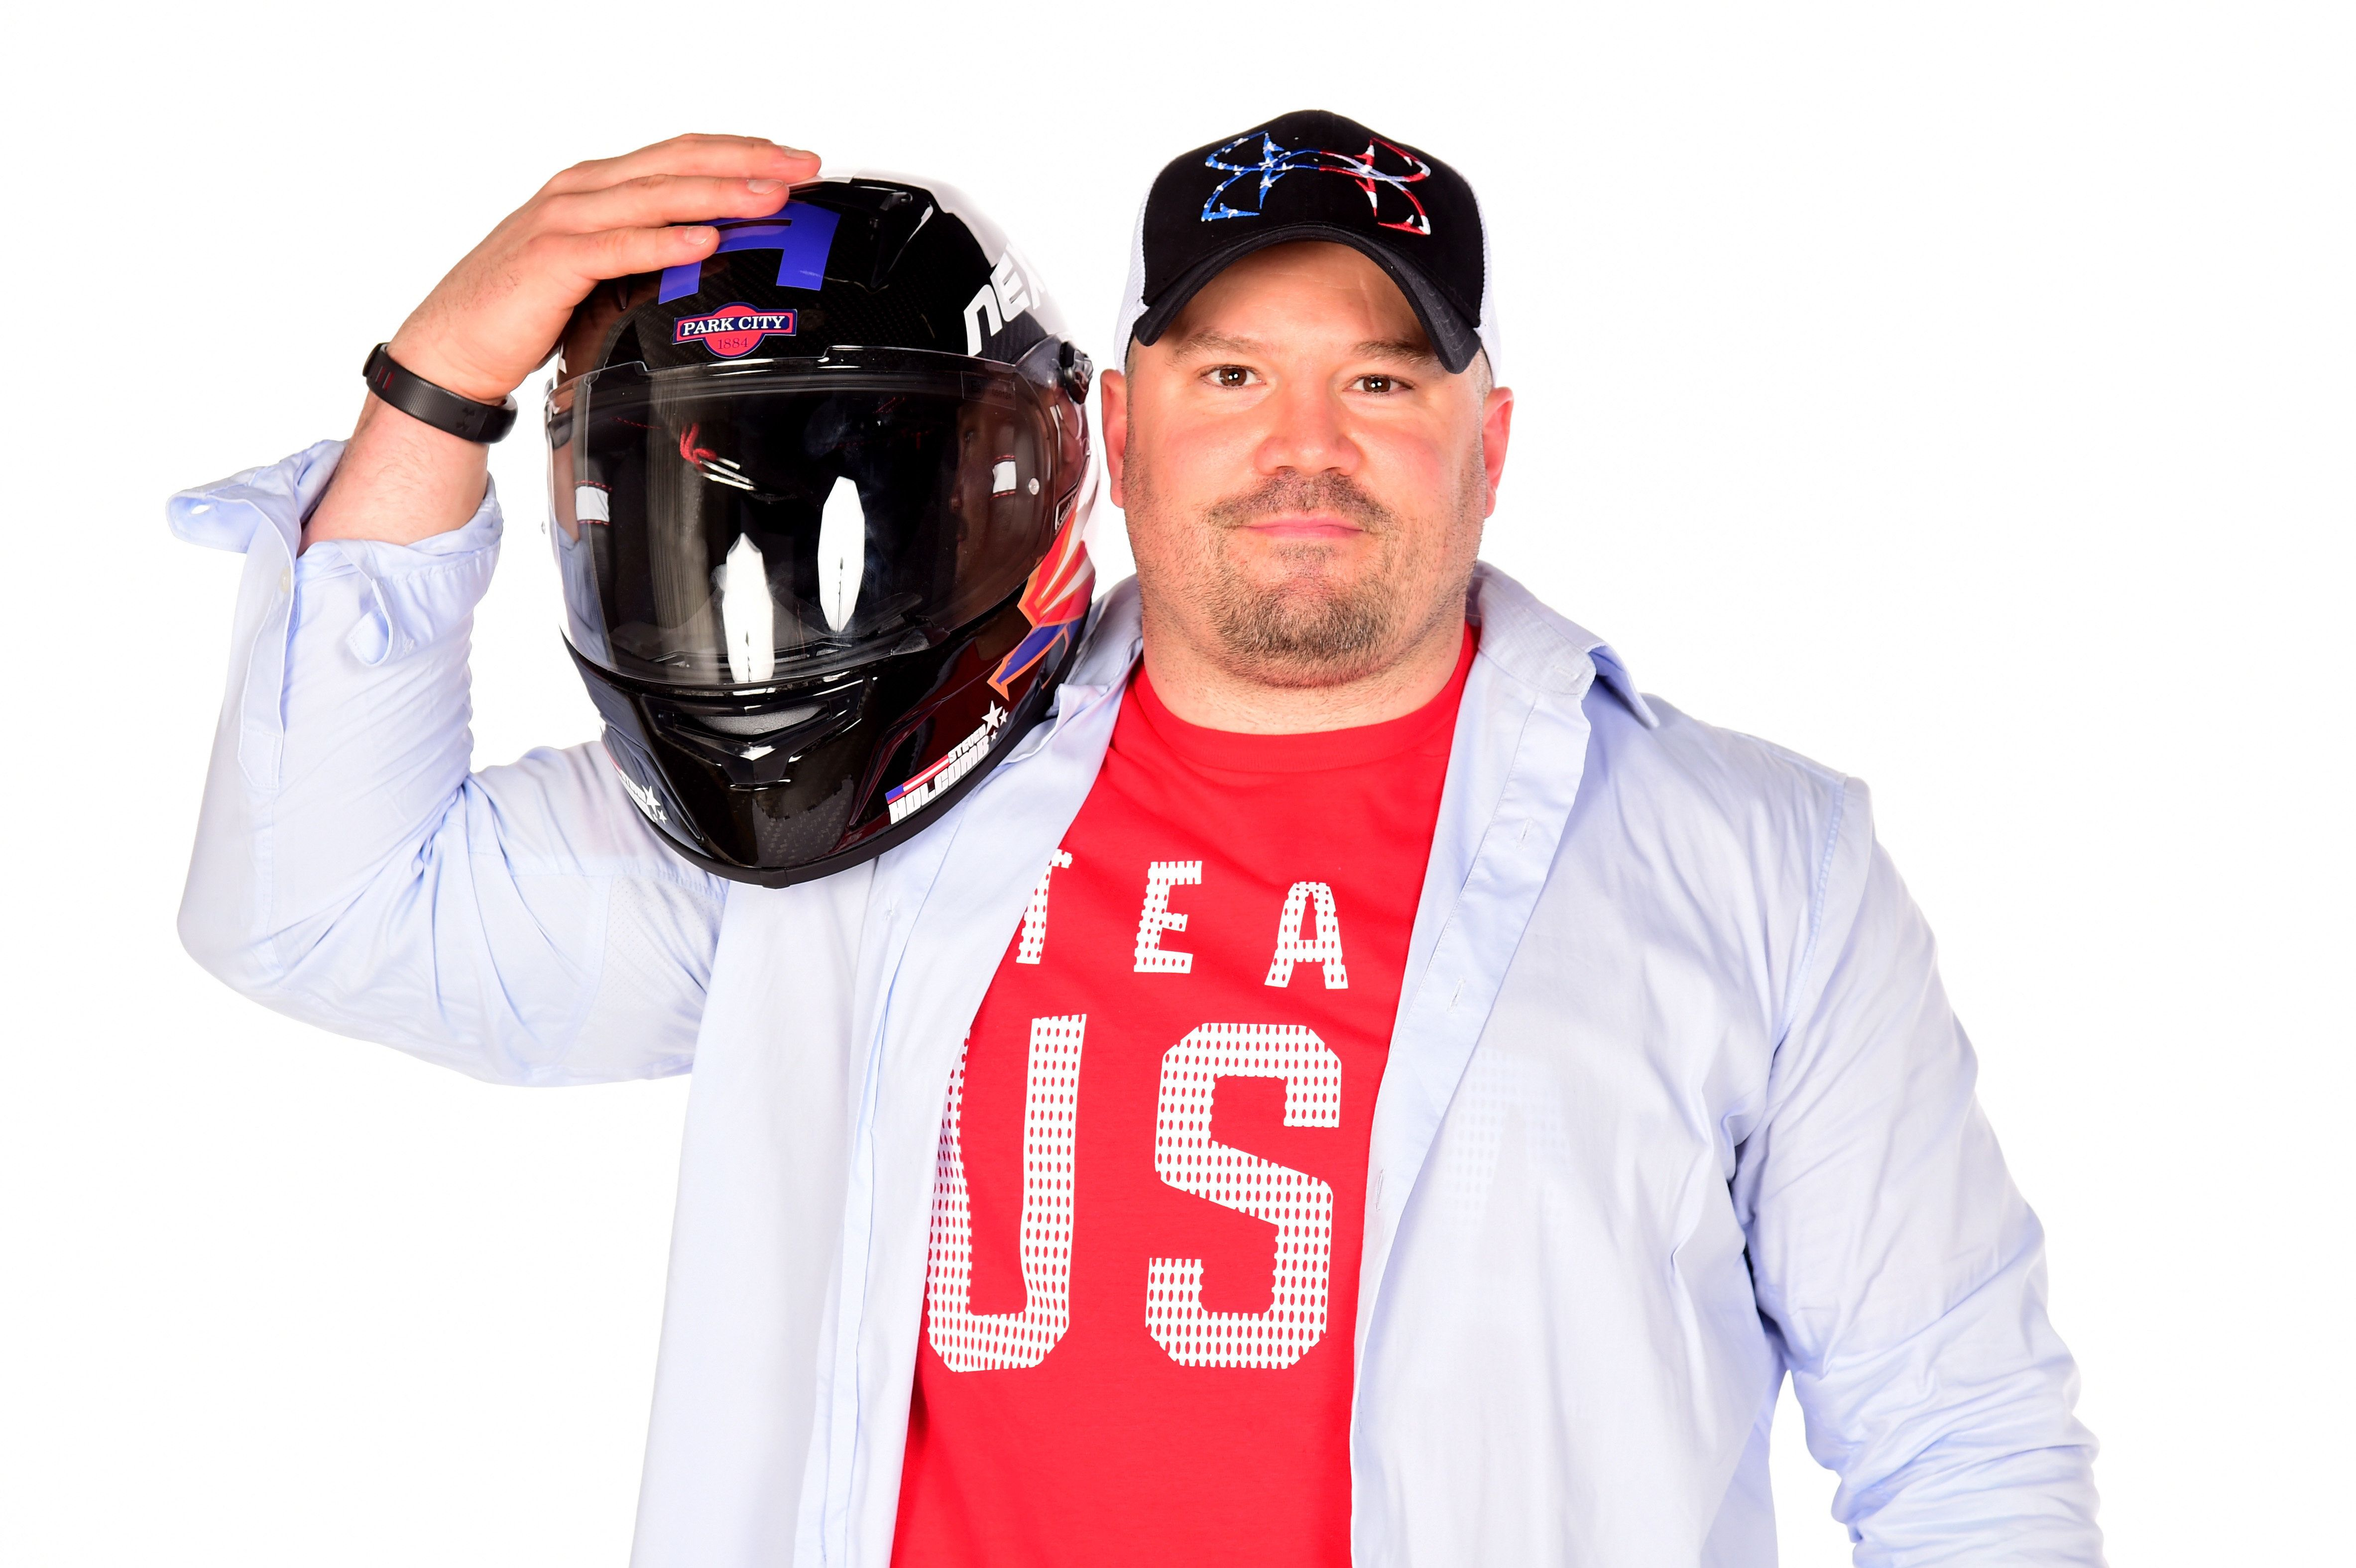 Steven Holcomb, who won Olympic gold in 2010, was found dead at a training site on Saturday.